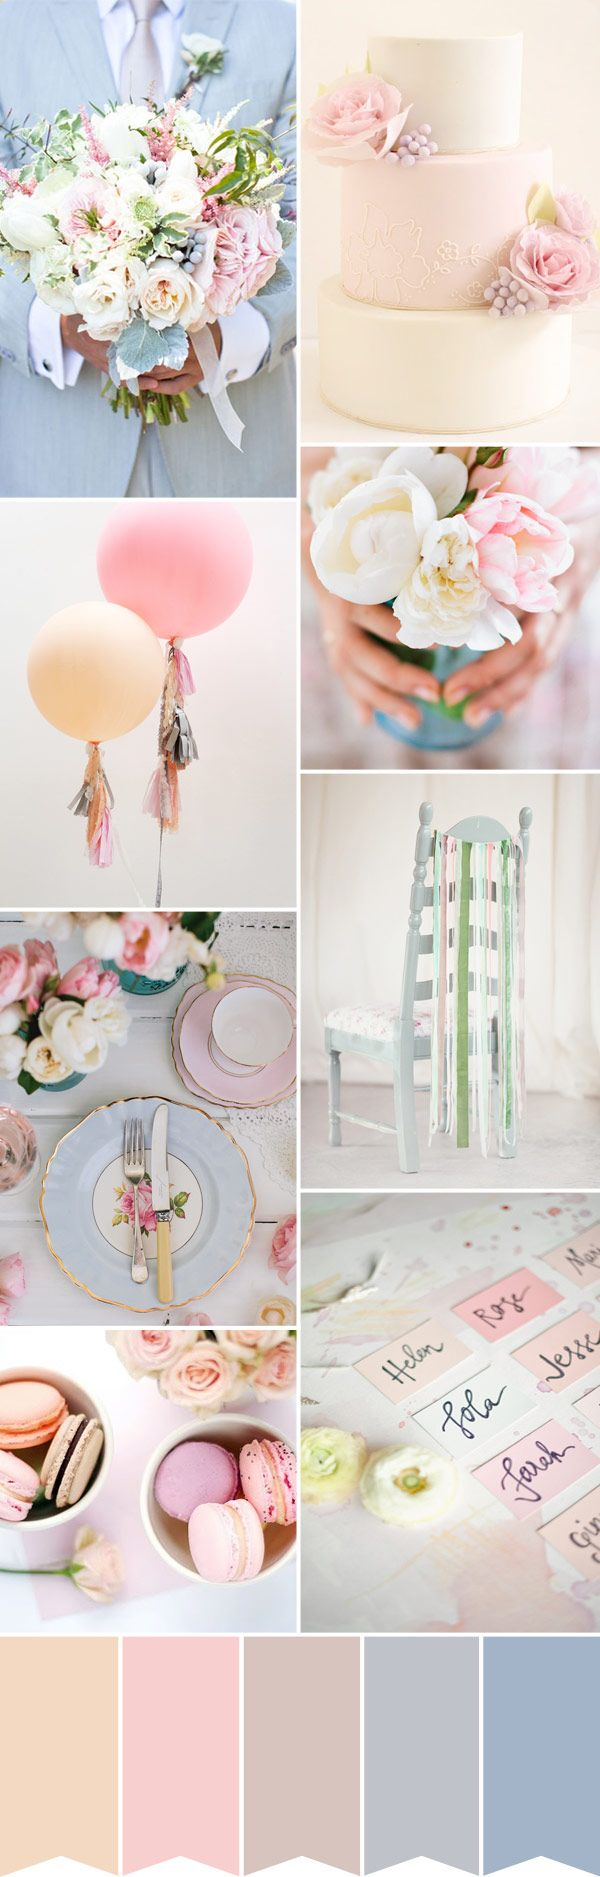 Soft colors and pastels. Pinned by Afloral.com from http://onefabday.com/pastel-wedding-colour-palette/?utm_source=Subscriber+Email+List&utm_campaign=5066e1fbd7-DT_+18022013&utm_medium=email ~Afloral.com has high-quality silk flowers and decorations for your DIY wedding.